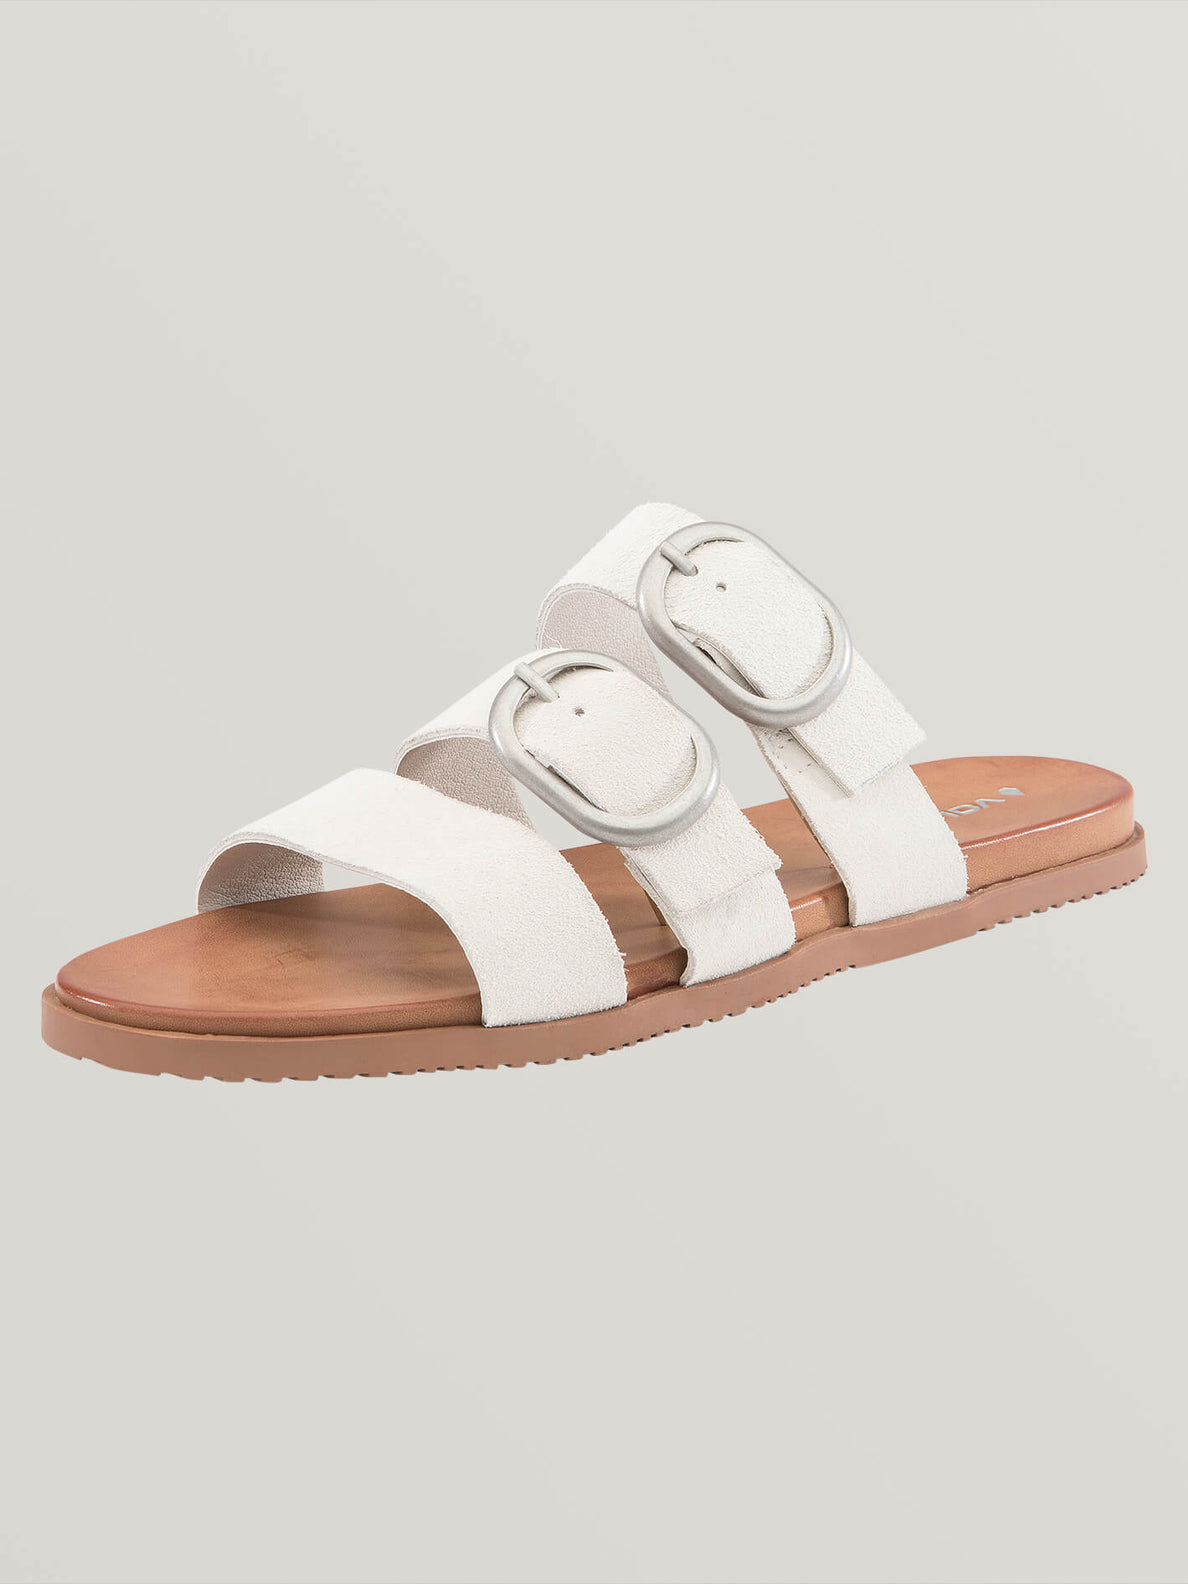 Buckle Up Buttercup Sandals In Bone, Back View